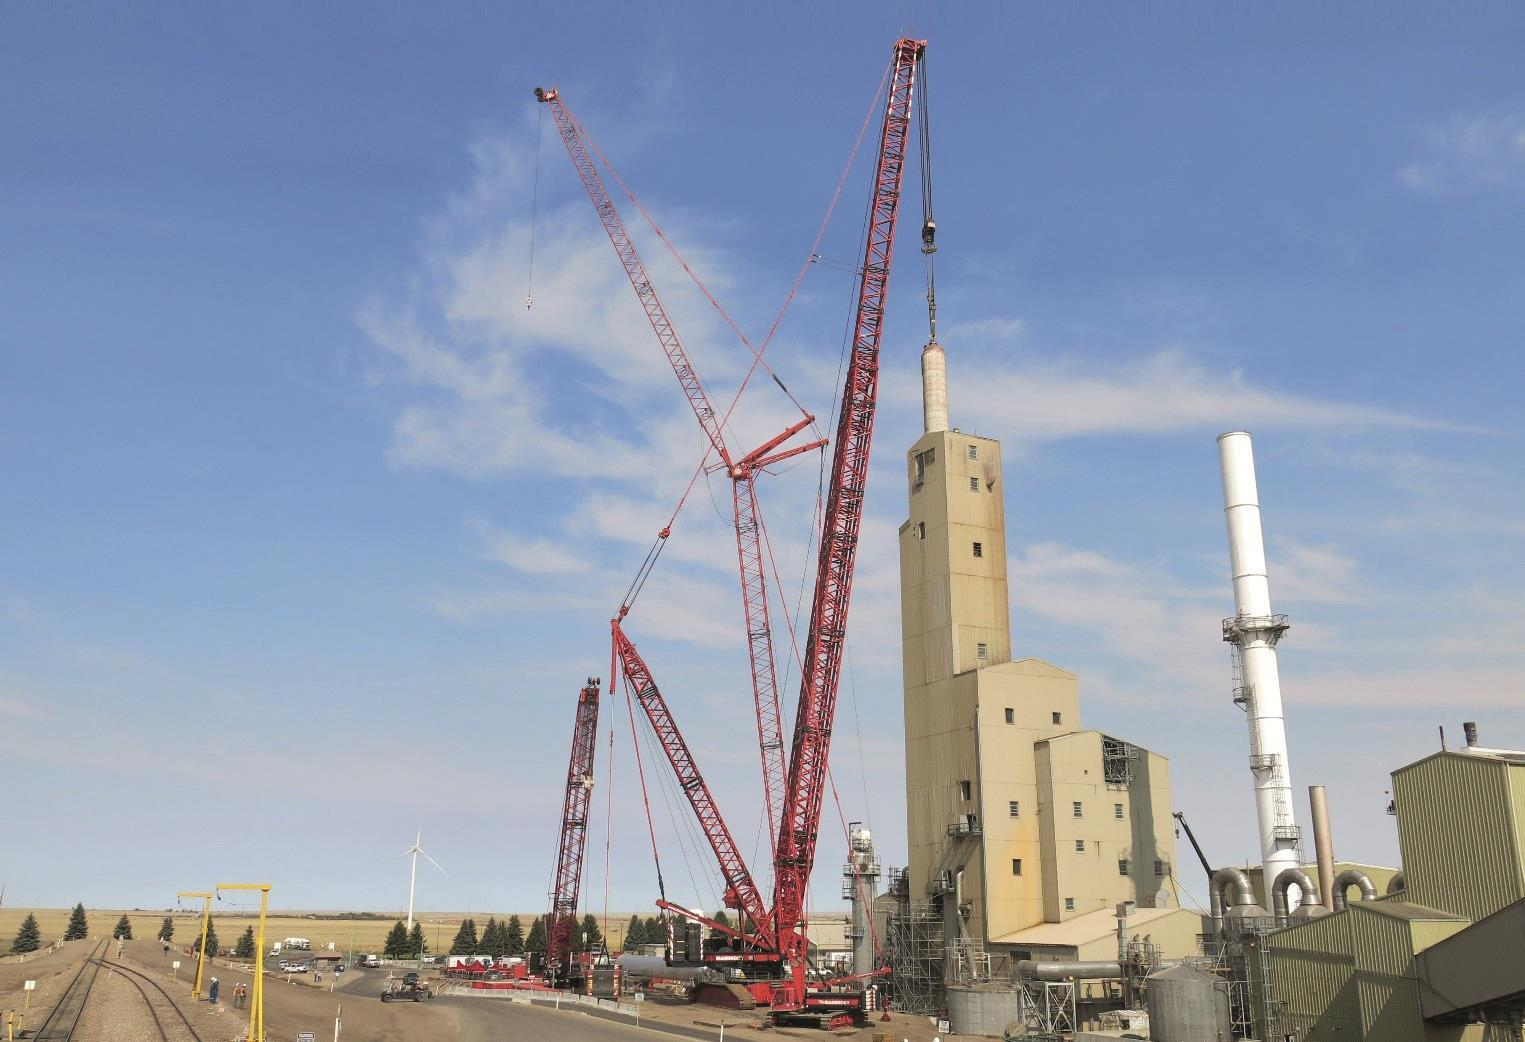 Wind Power and Nuclear Power Industries Drive Heavy Lifting Growth